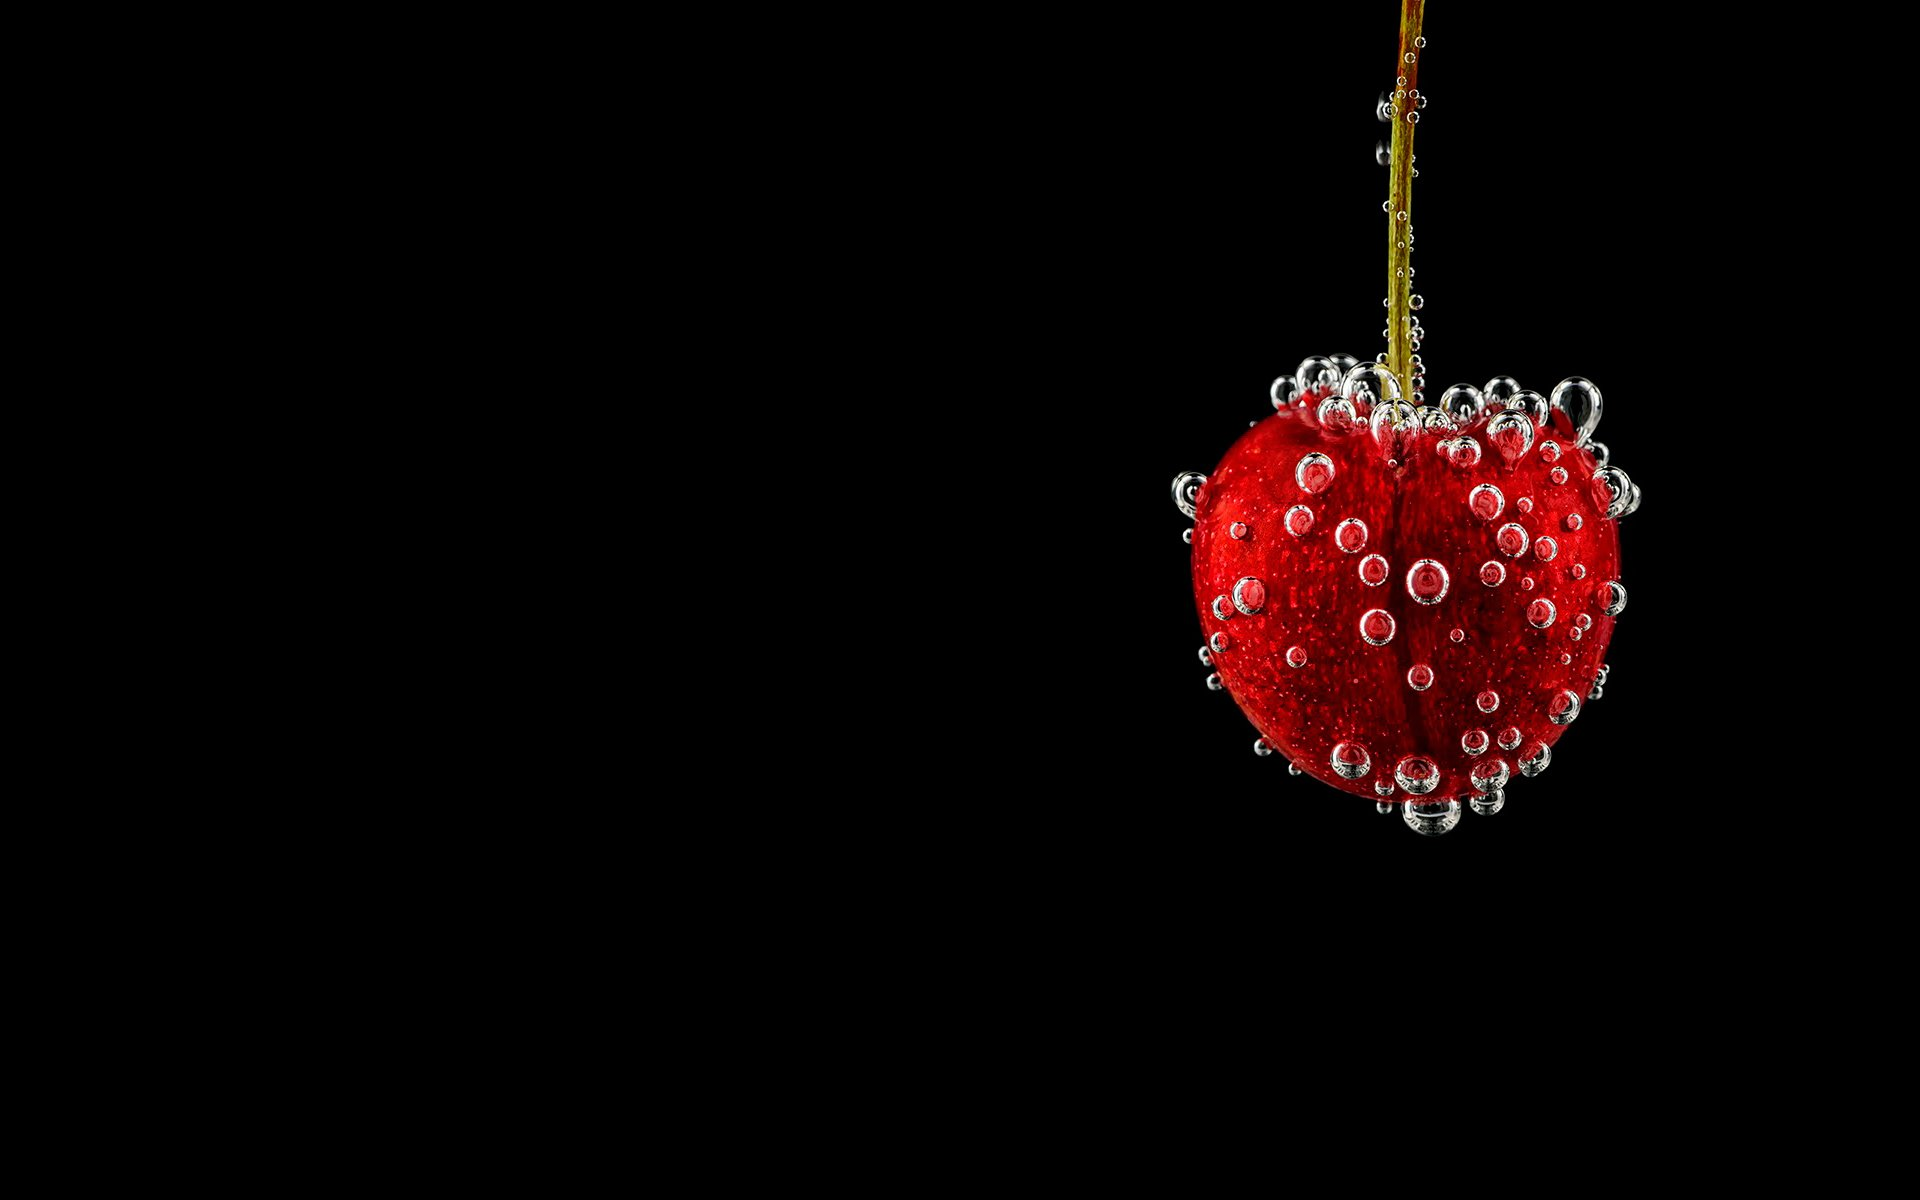 191 Cherry HD Wallpapers